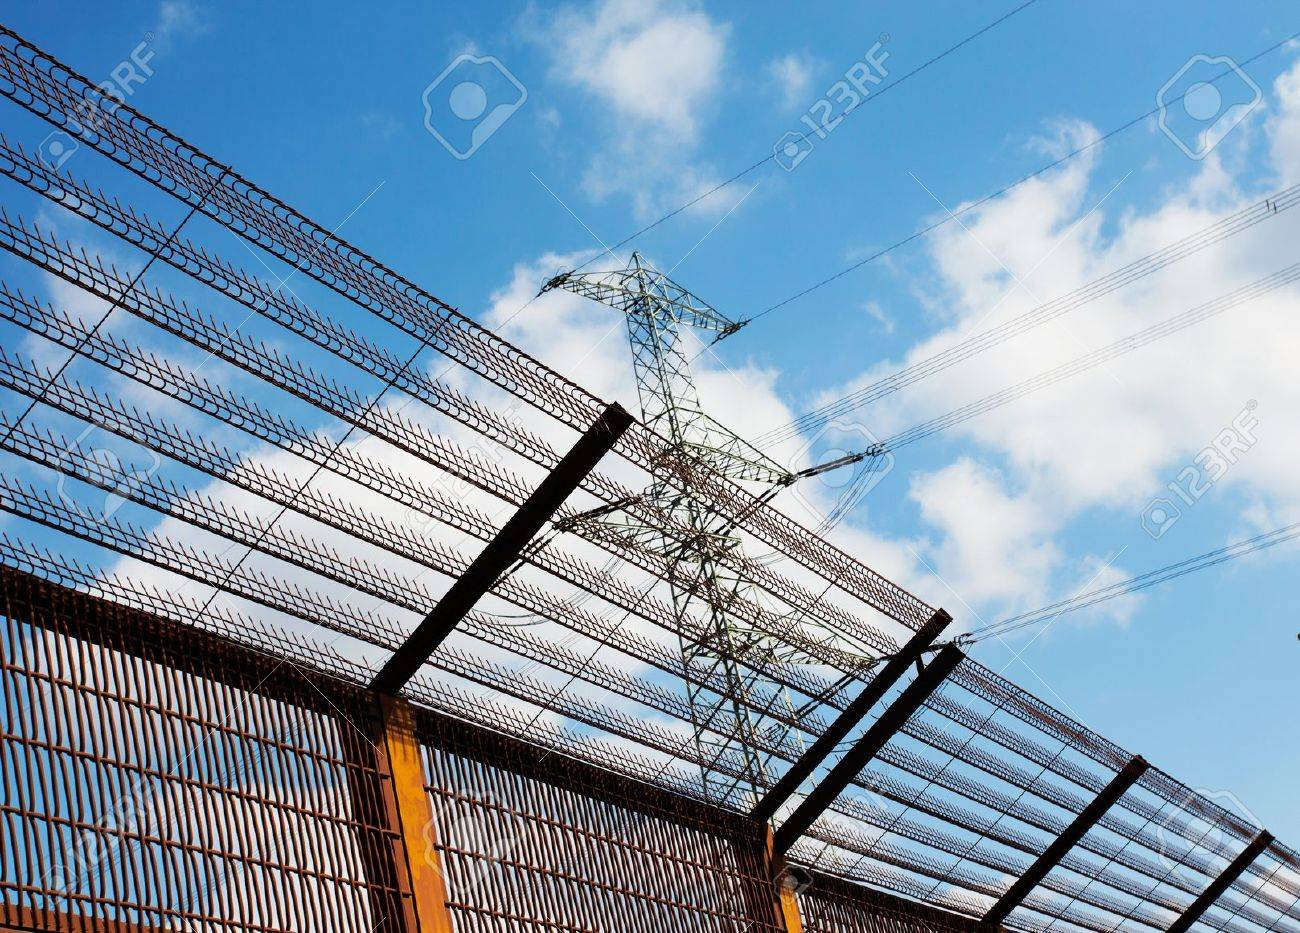 Barrier fence and Electricity pylon against the blue sky - 21359904